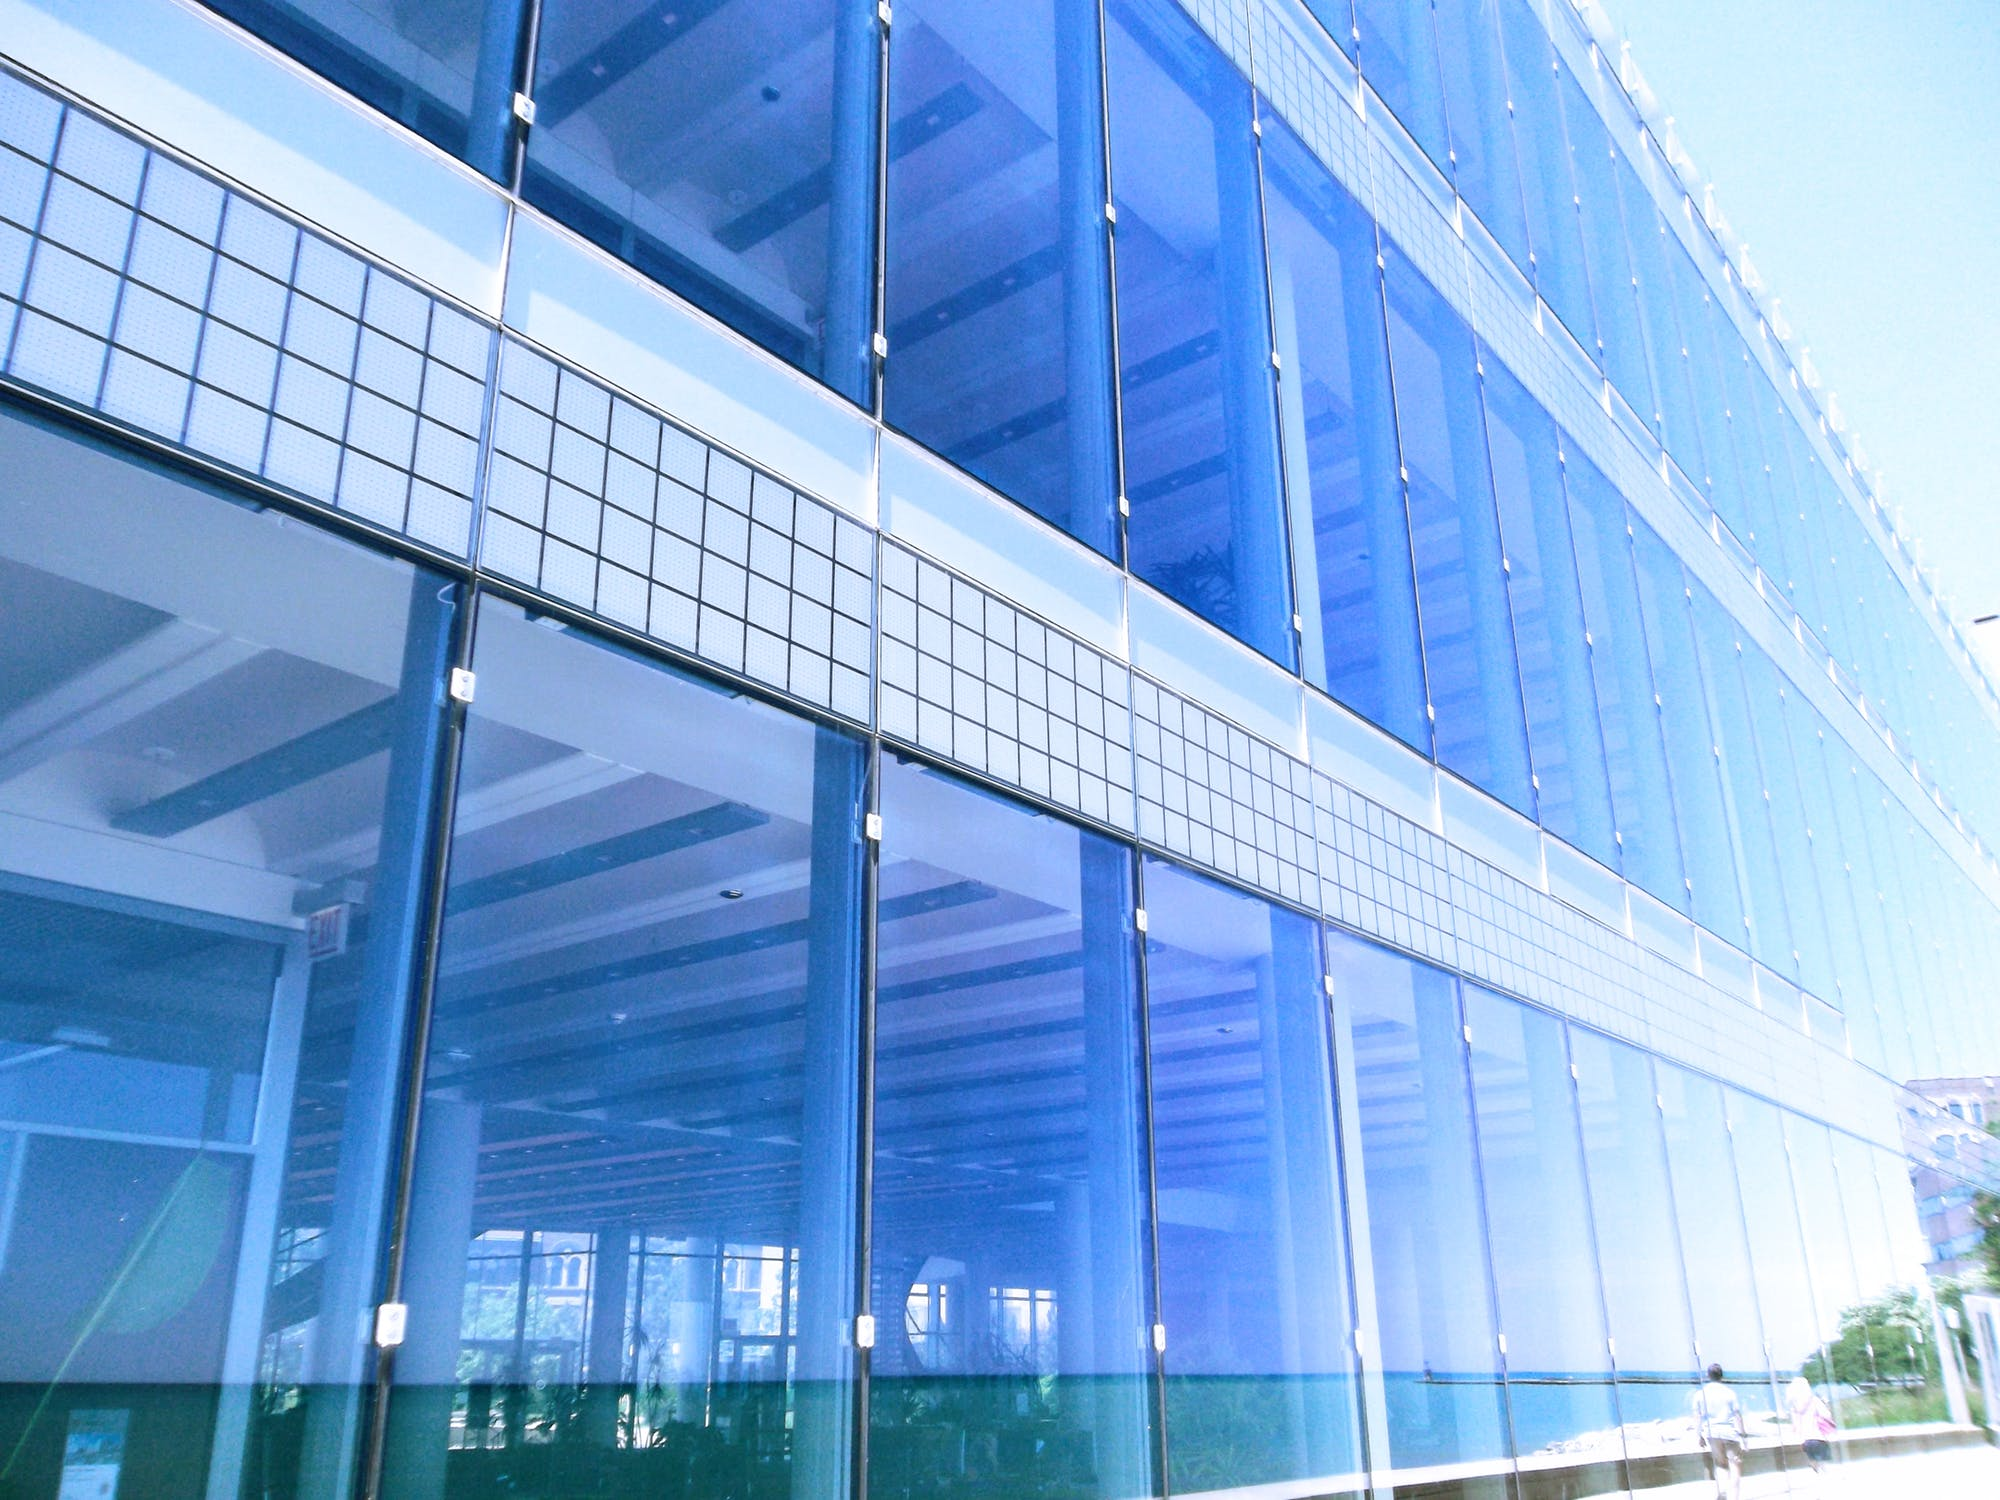 Improve Commercial Spaces in Five Ways With Window Films - Commercial Window Tinting in Denver, Colorado